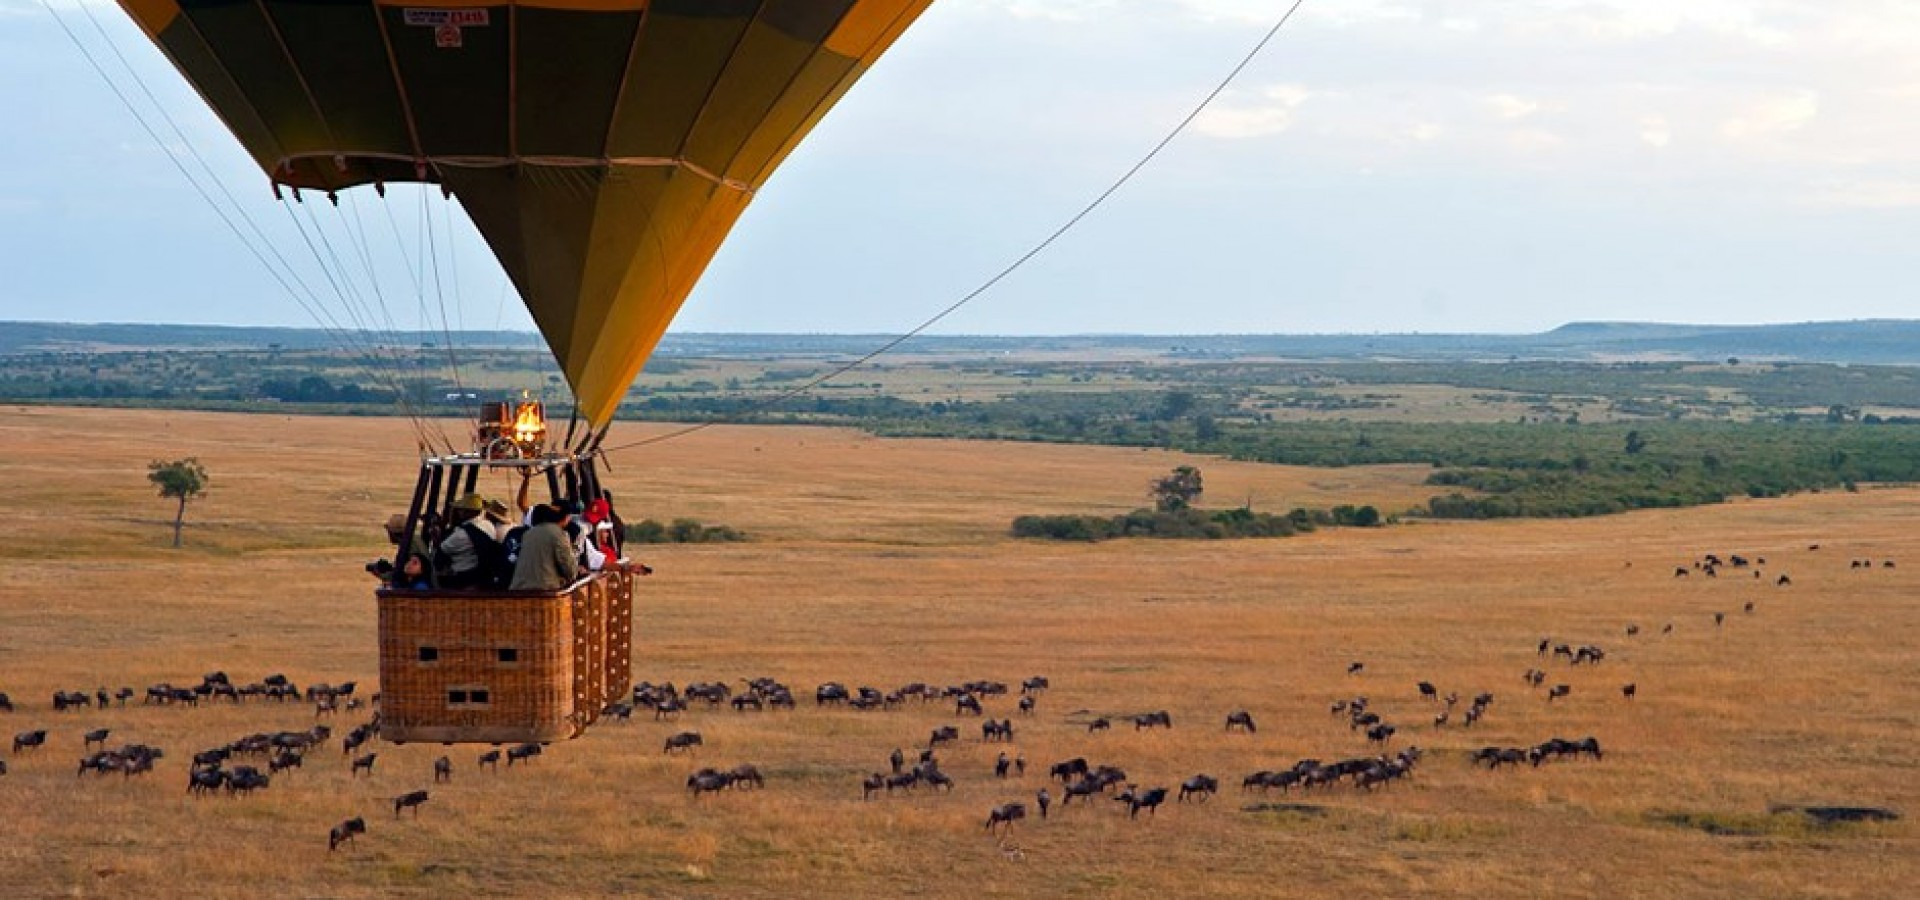 social evaluation of kenya safari tourism The kenya tourism board said the more fanpage or higher rate of visitors to the social media sites of kenya safaris and tours © 2018 the writepass journal.